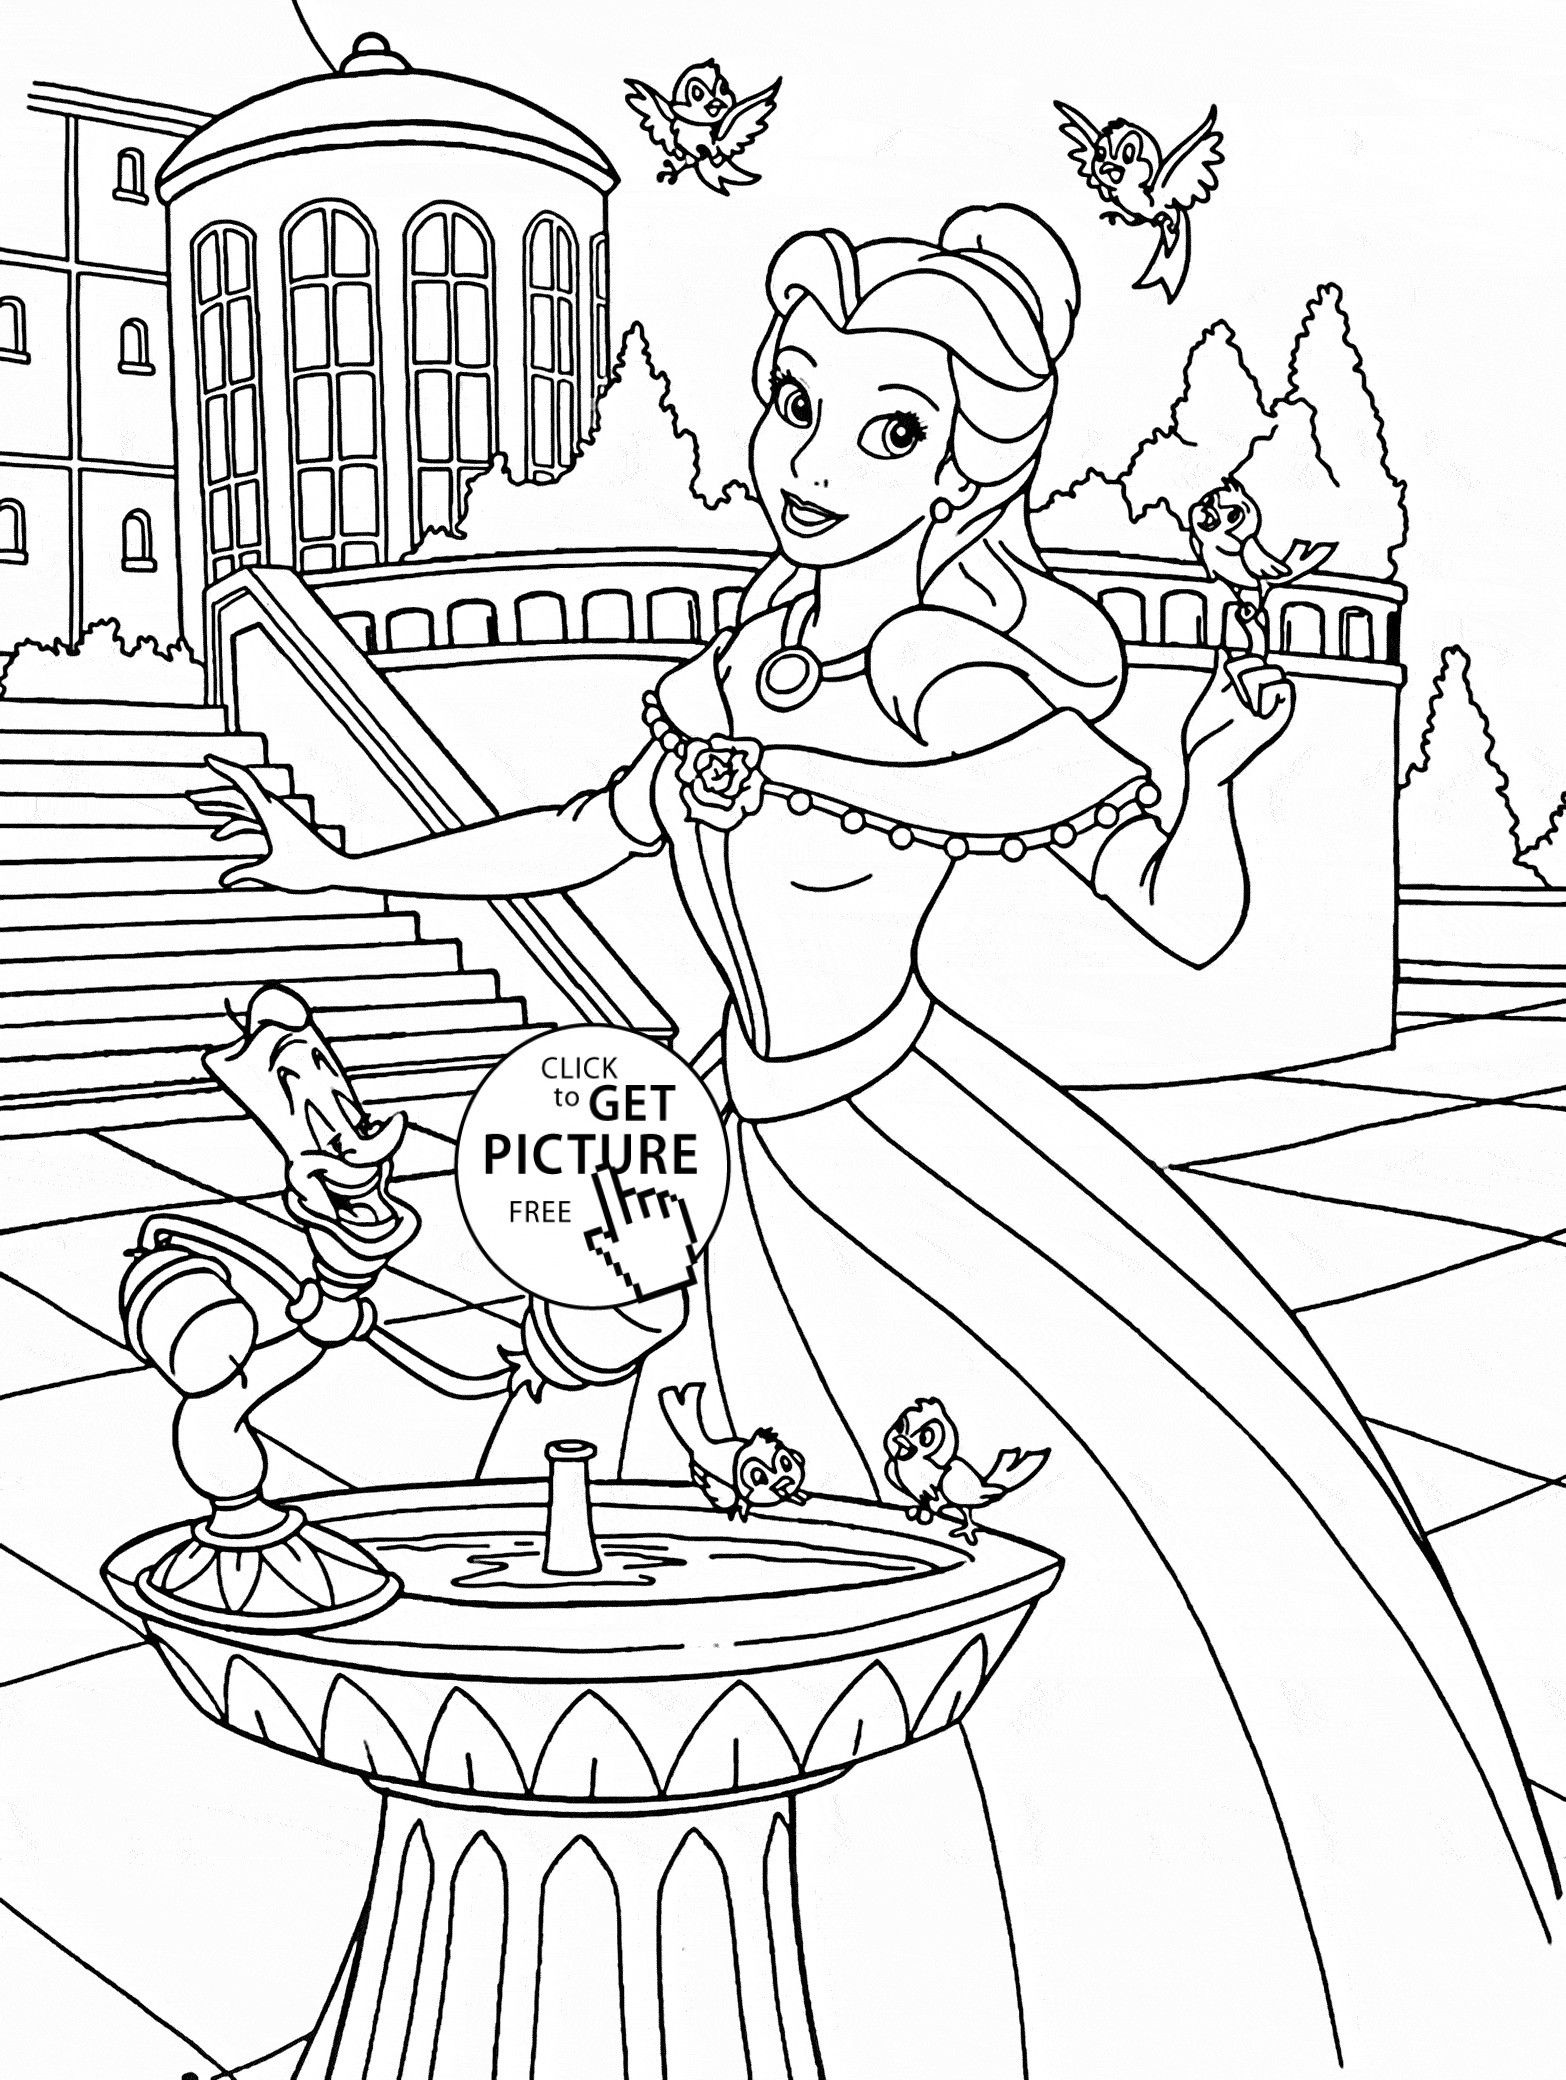 Coloring Page Princess And Castle From The Thousand Images On The